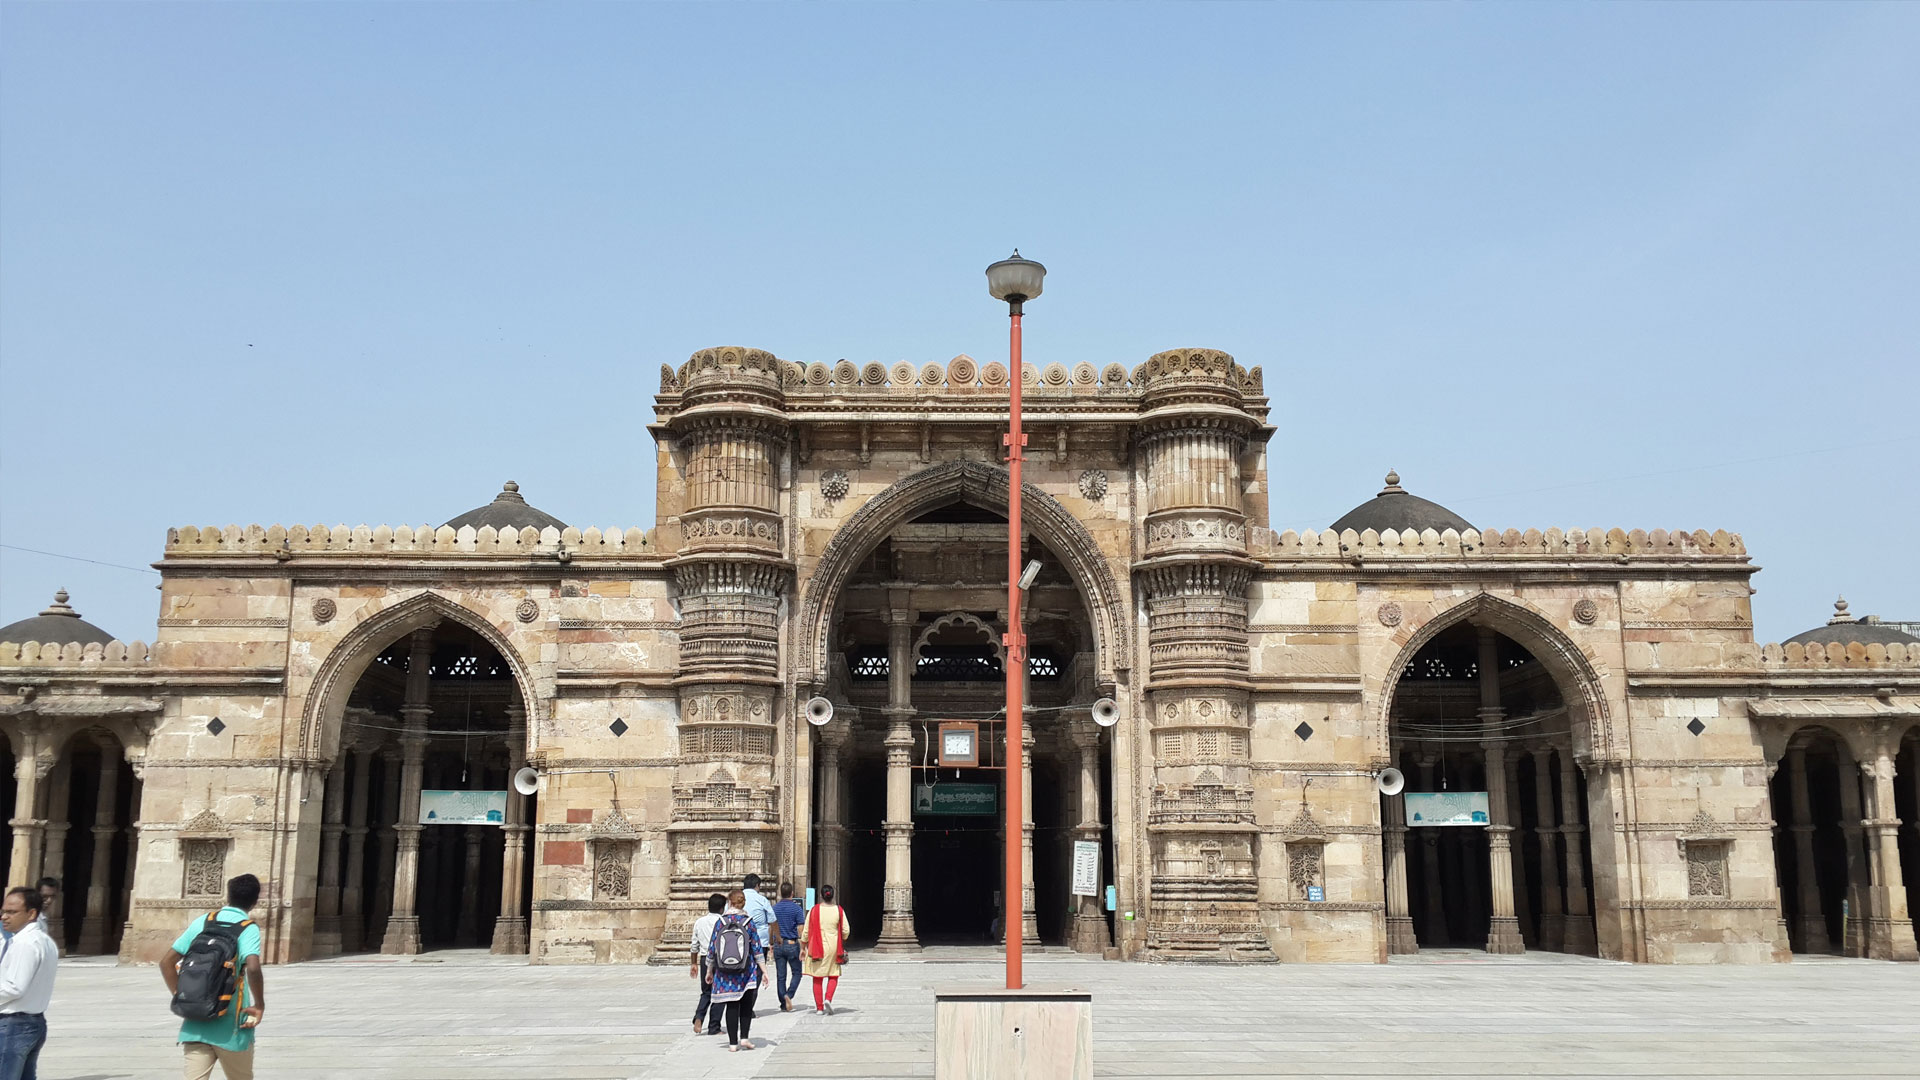 Jama Masjid Ahmedabad - one of the most popular tourist places in Ahmedabad